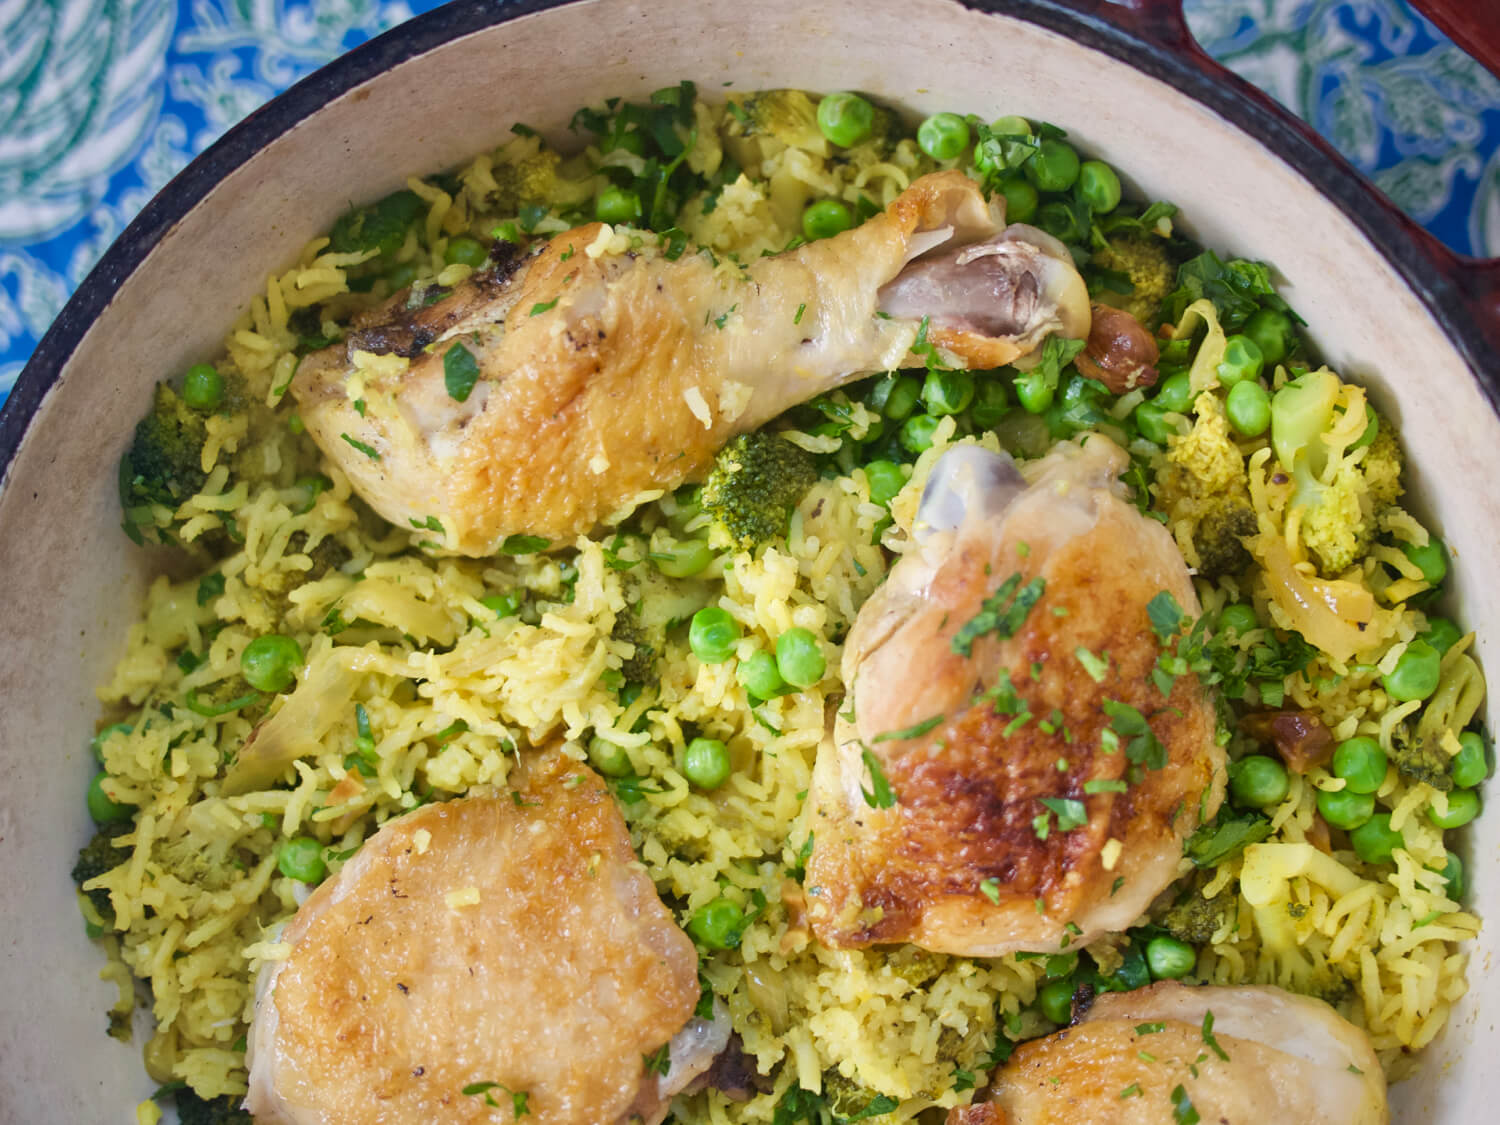 Lemony Chicken and Rice with Broccoli